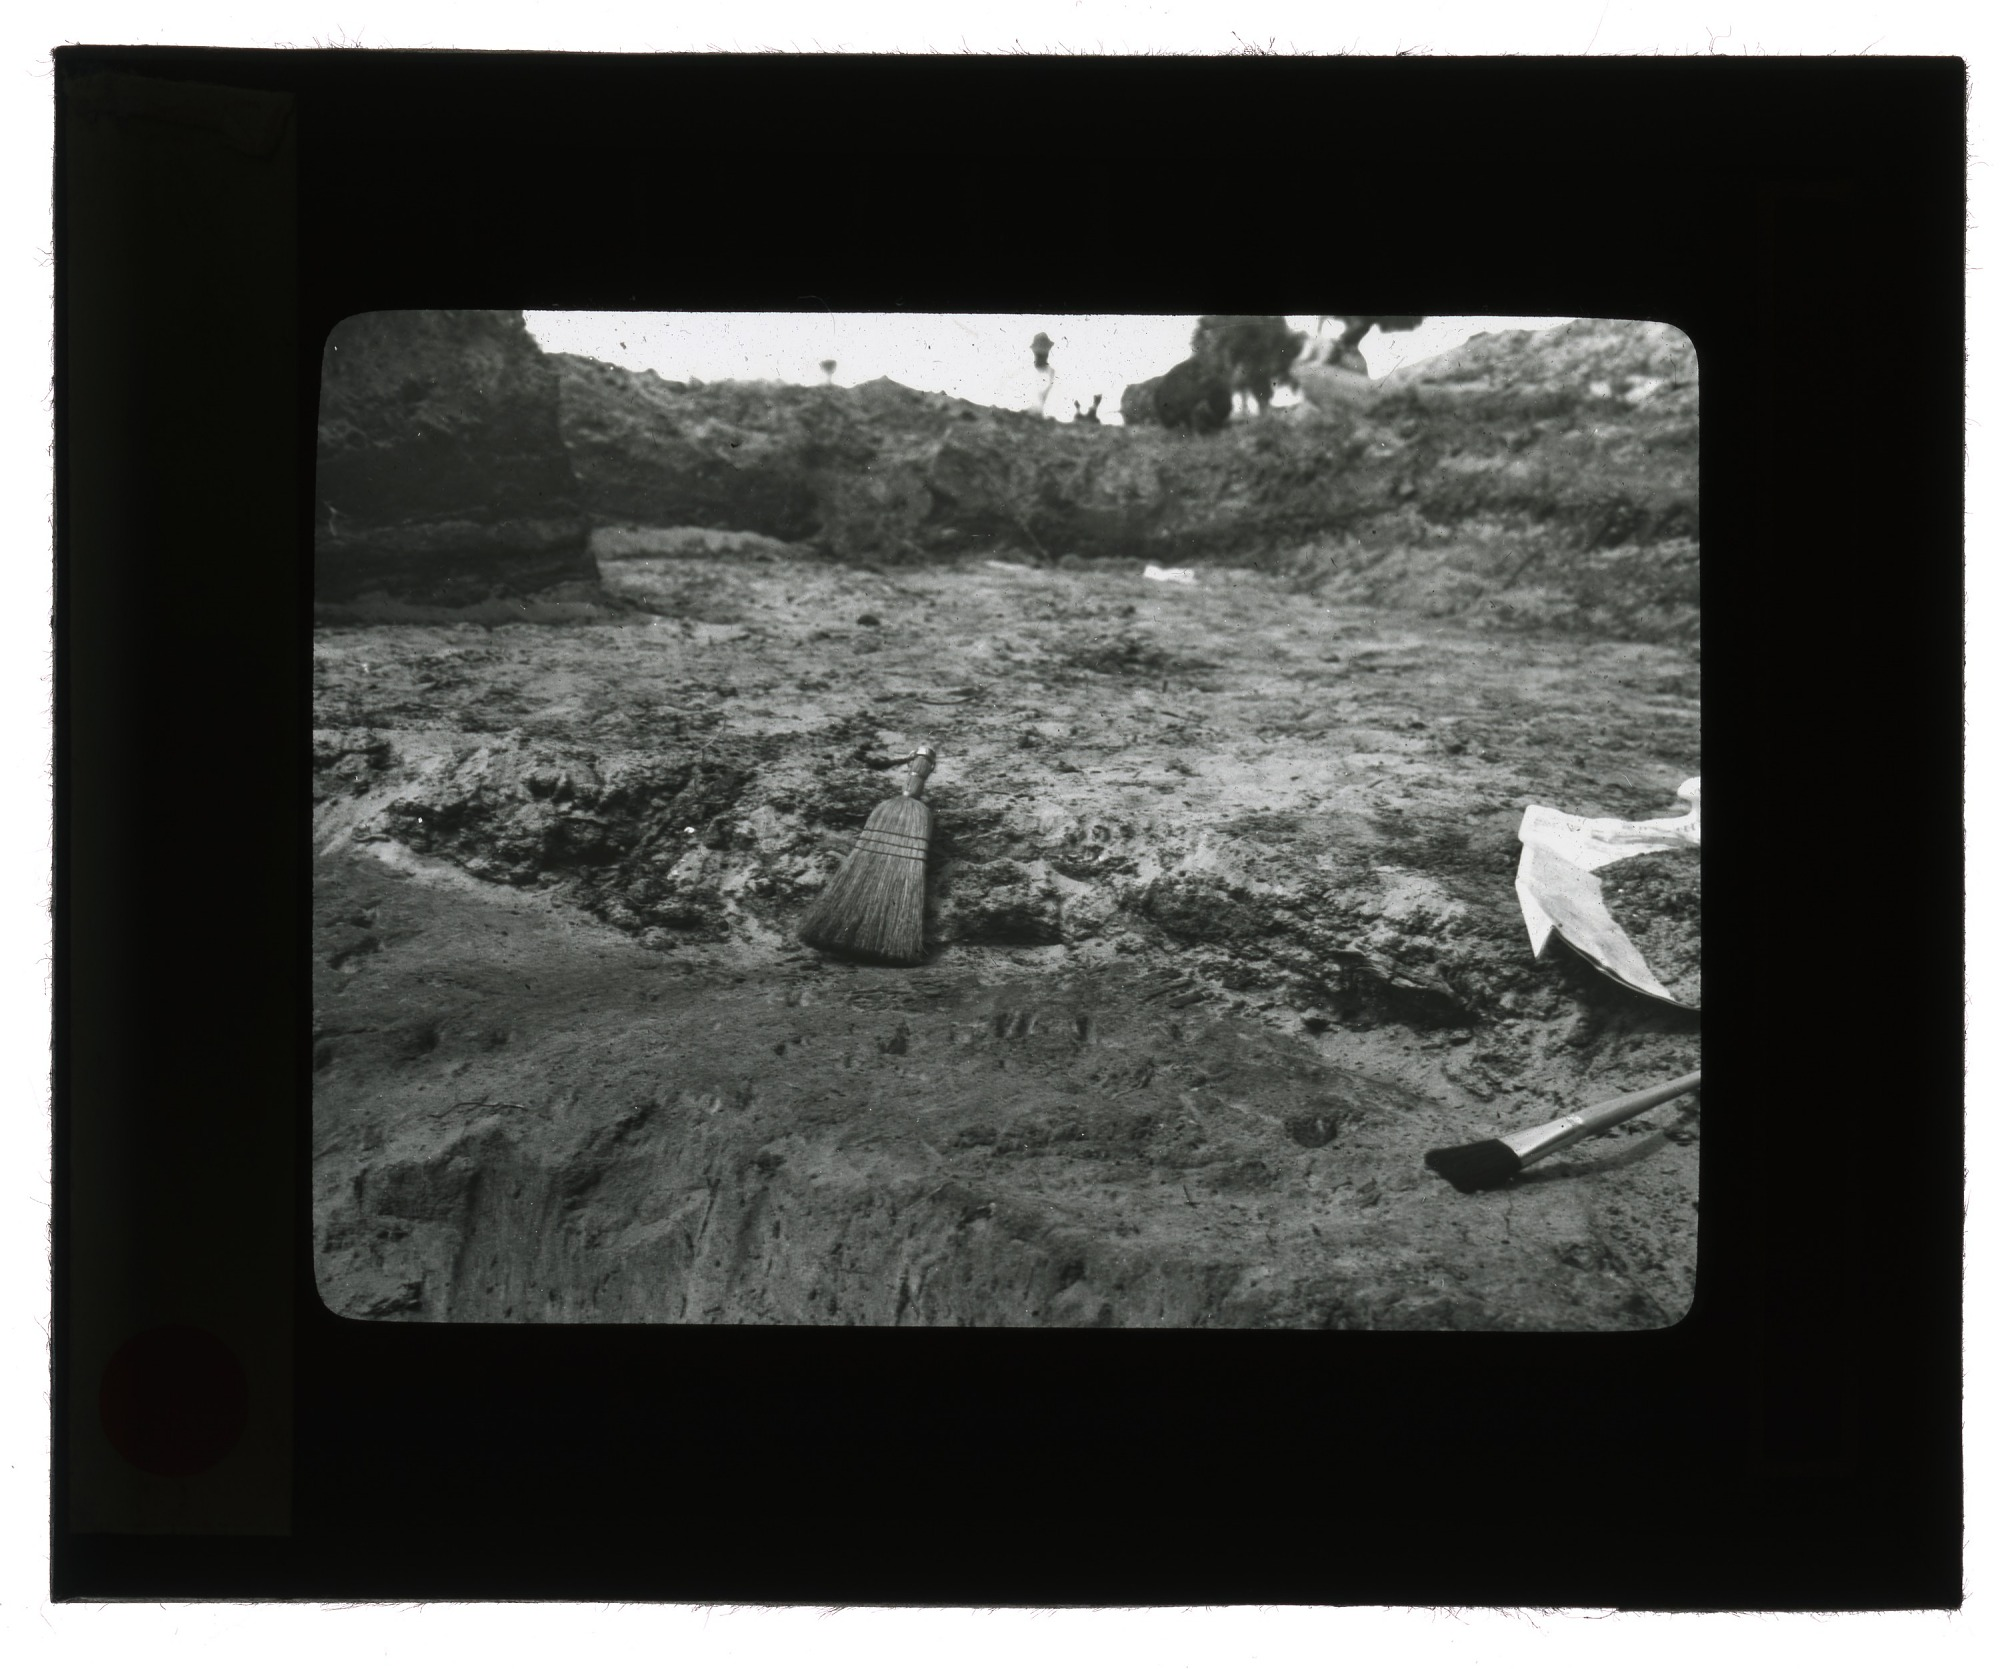 Paleontological Expedition Site